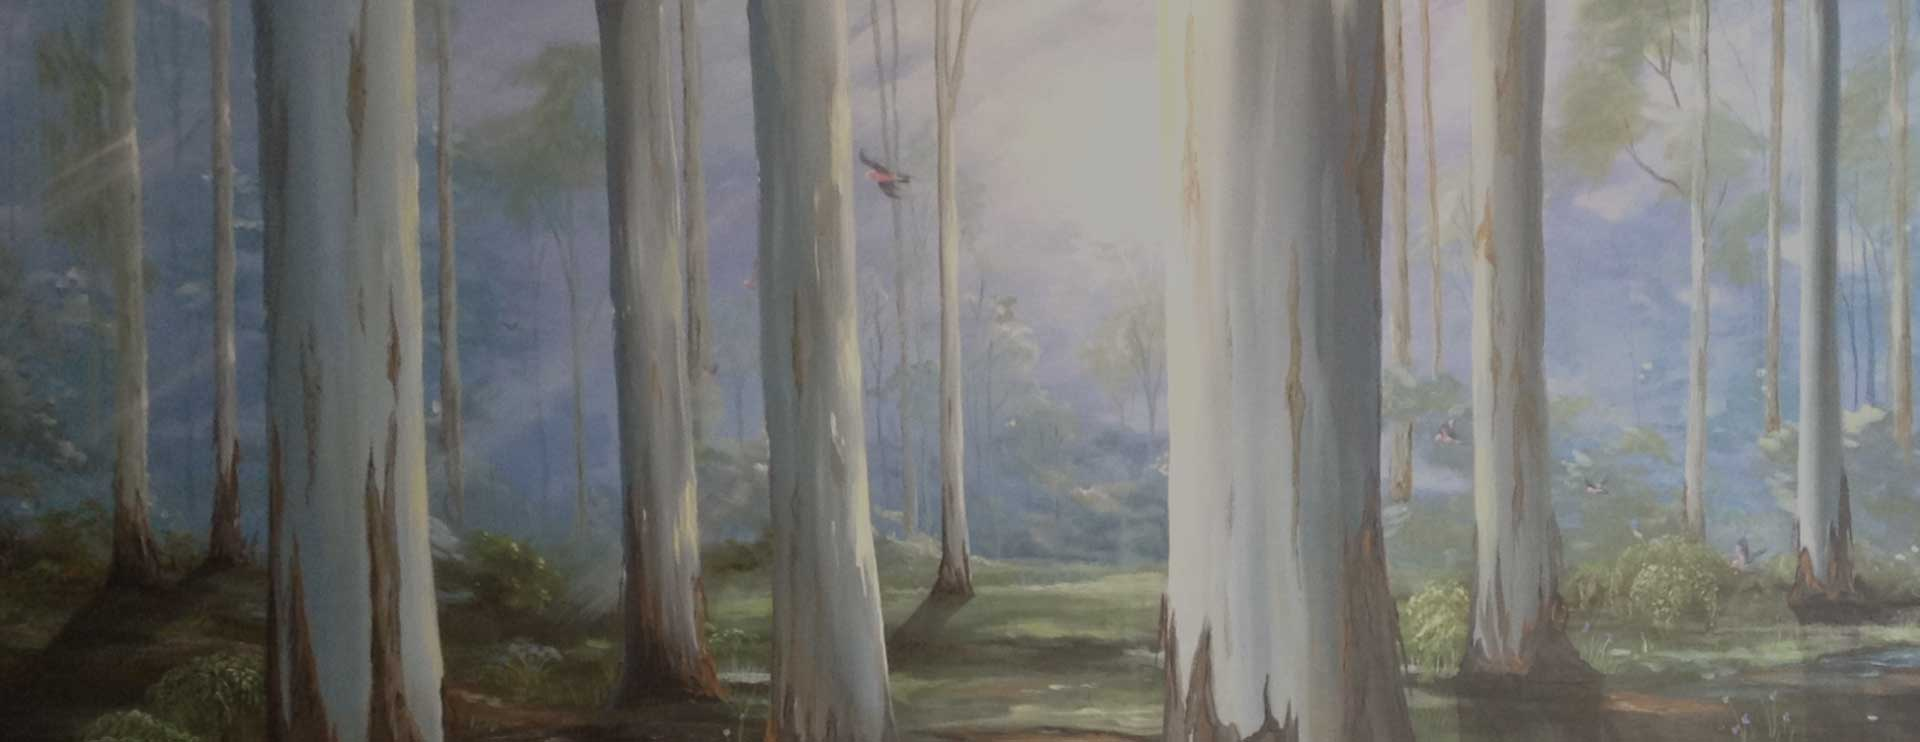 Art Studio Arts trail Patricia Smart Spinebill Studio Blue mountains artist painting Australian artist BMCAN